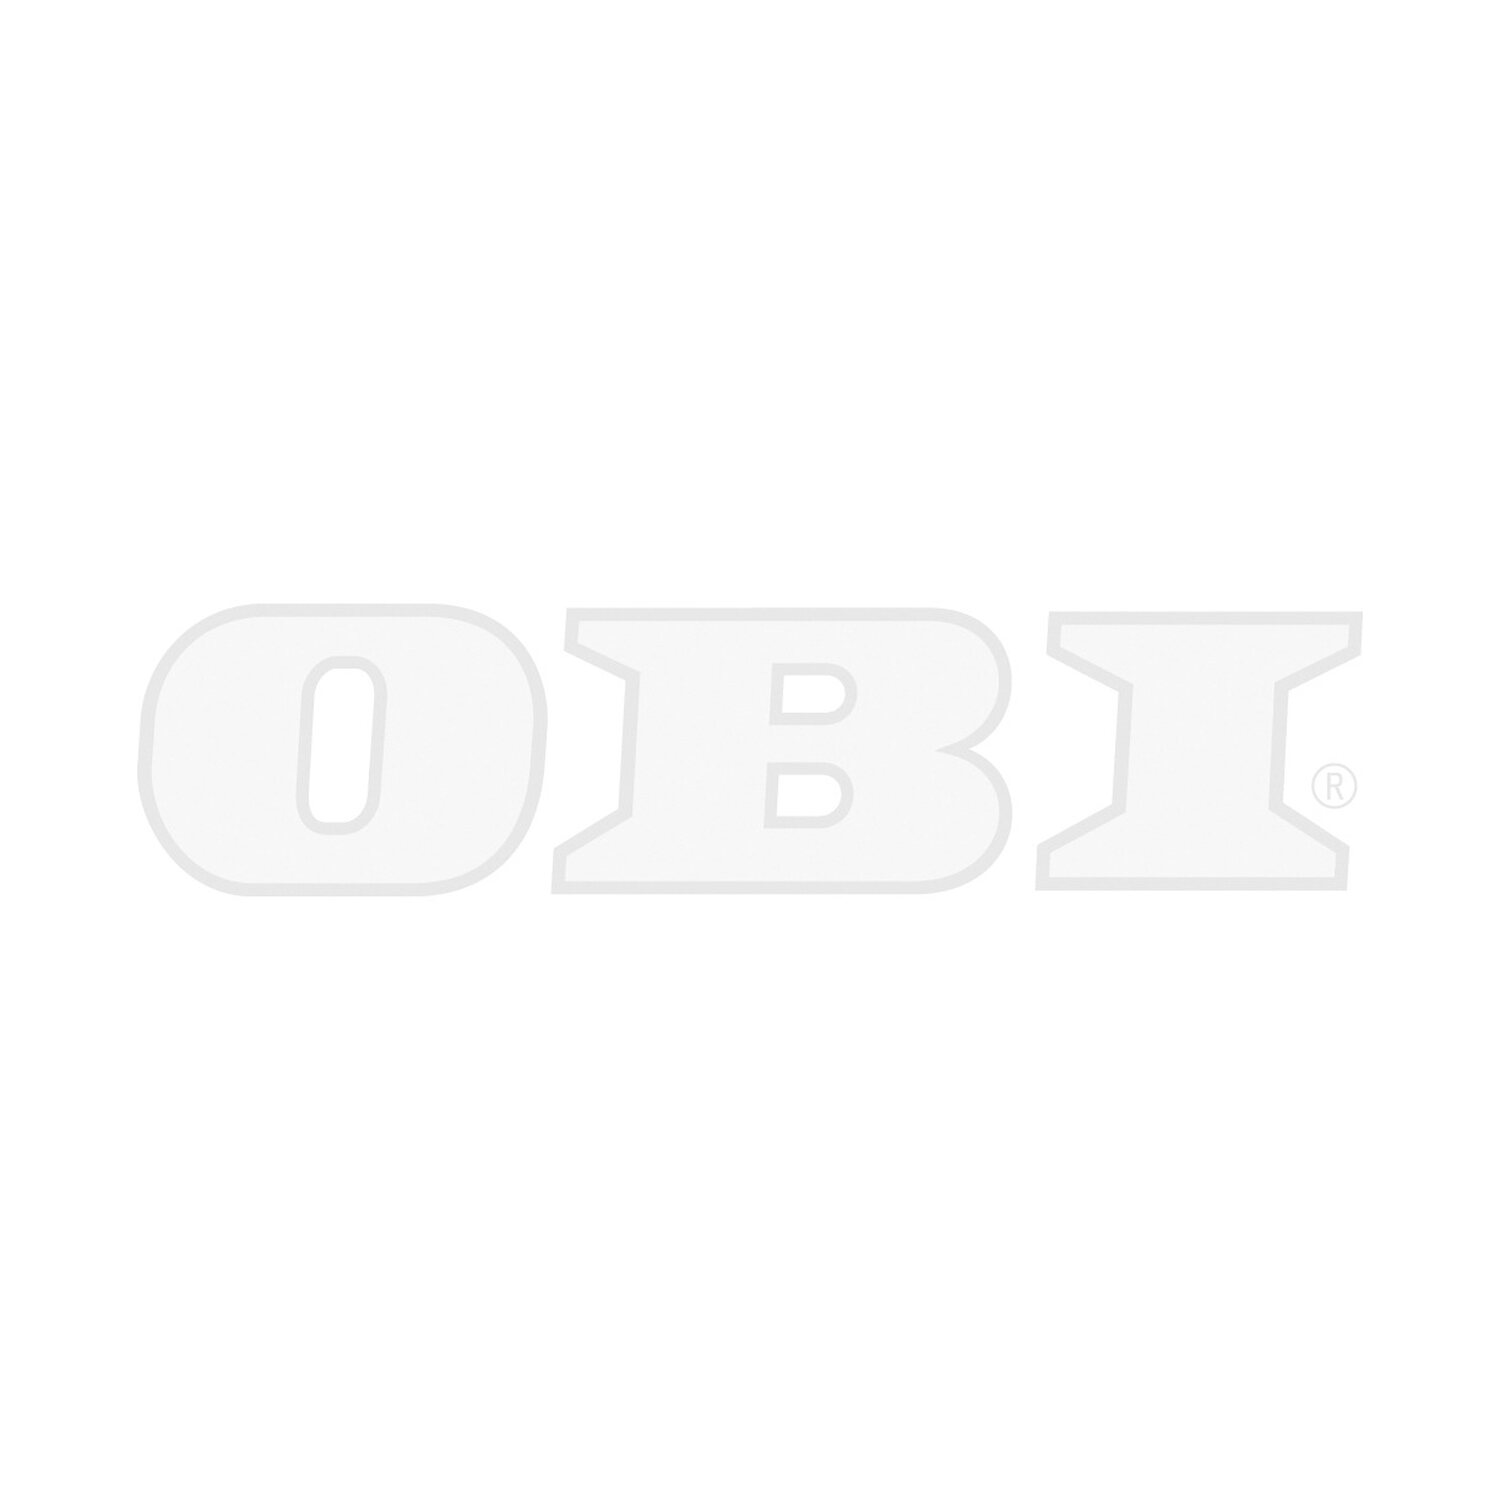 jungle gym holzspielturm mansion kletterger st mit rutsche. Black Bedroom Furniture Sets. Home Design Ideas